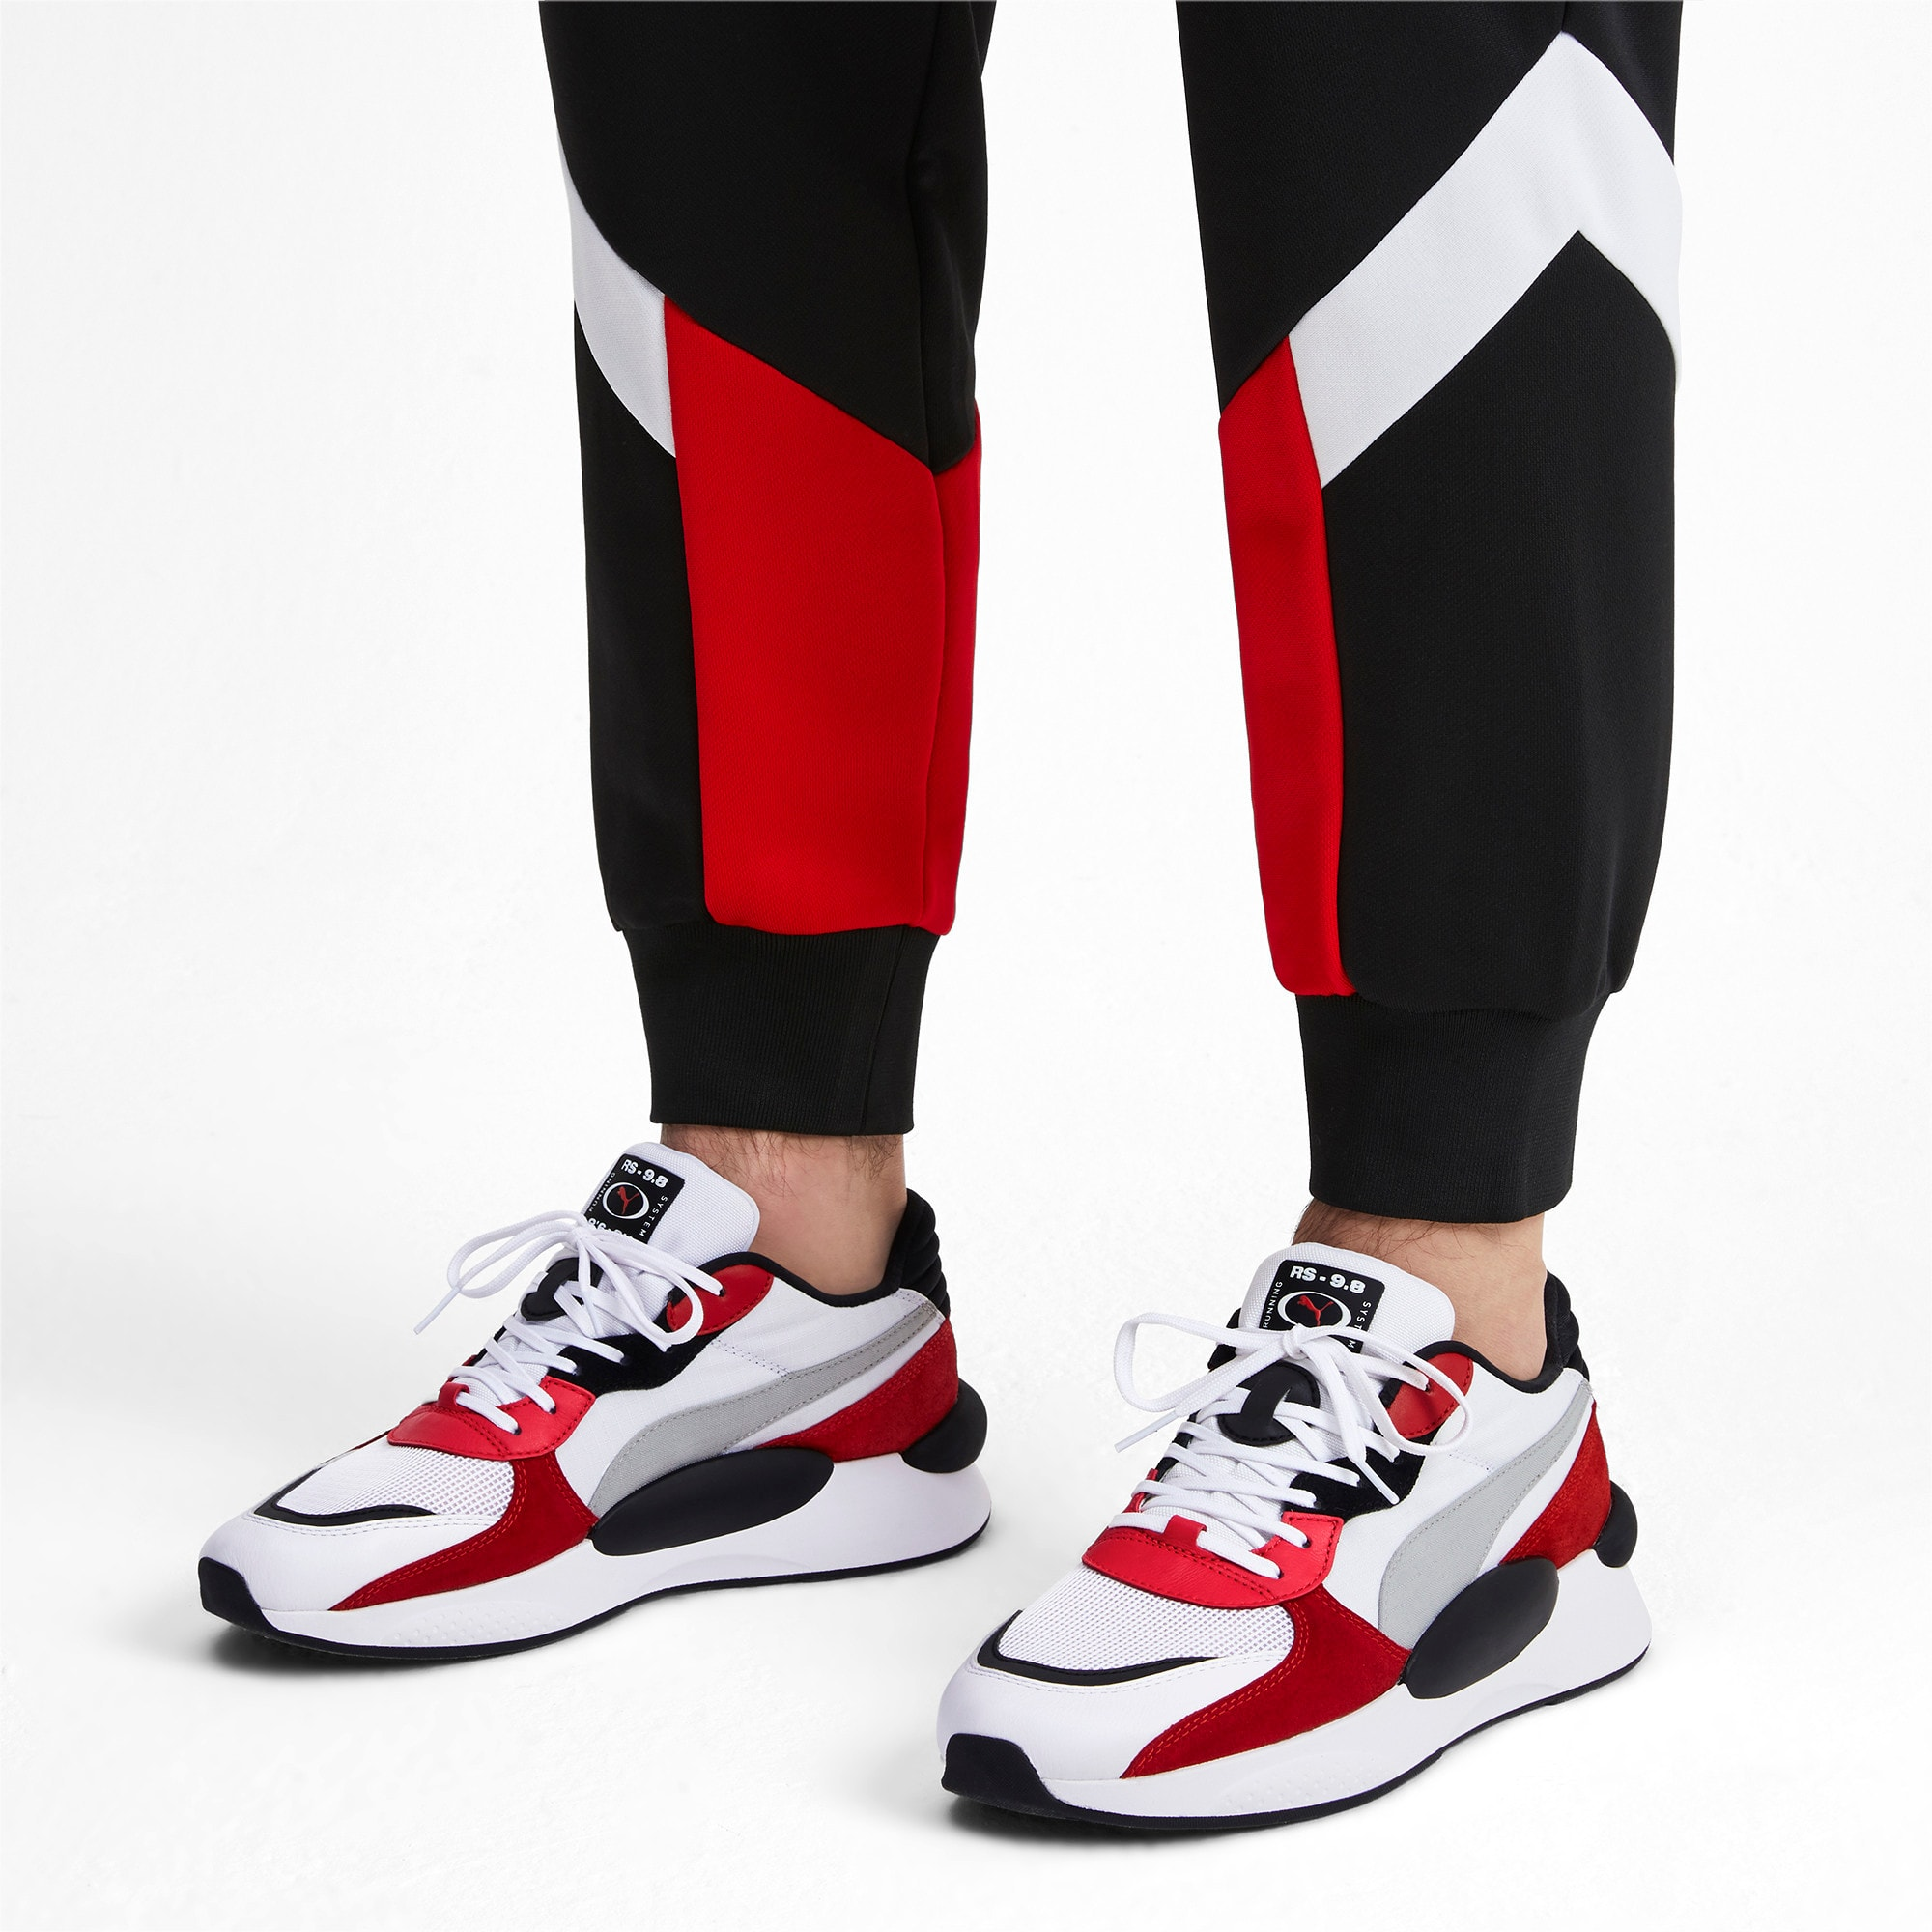 Thumbnail 2 of RS 9.8 Space Trainers, Puma White-High Risk Red, medium-IND